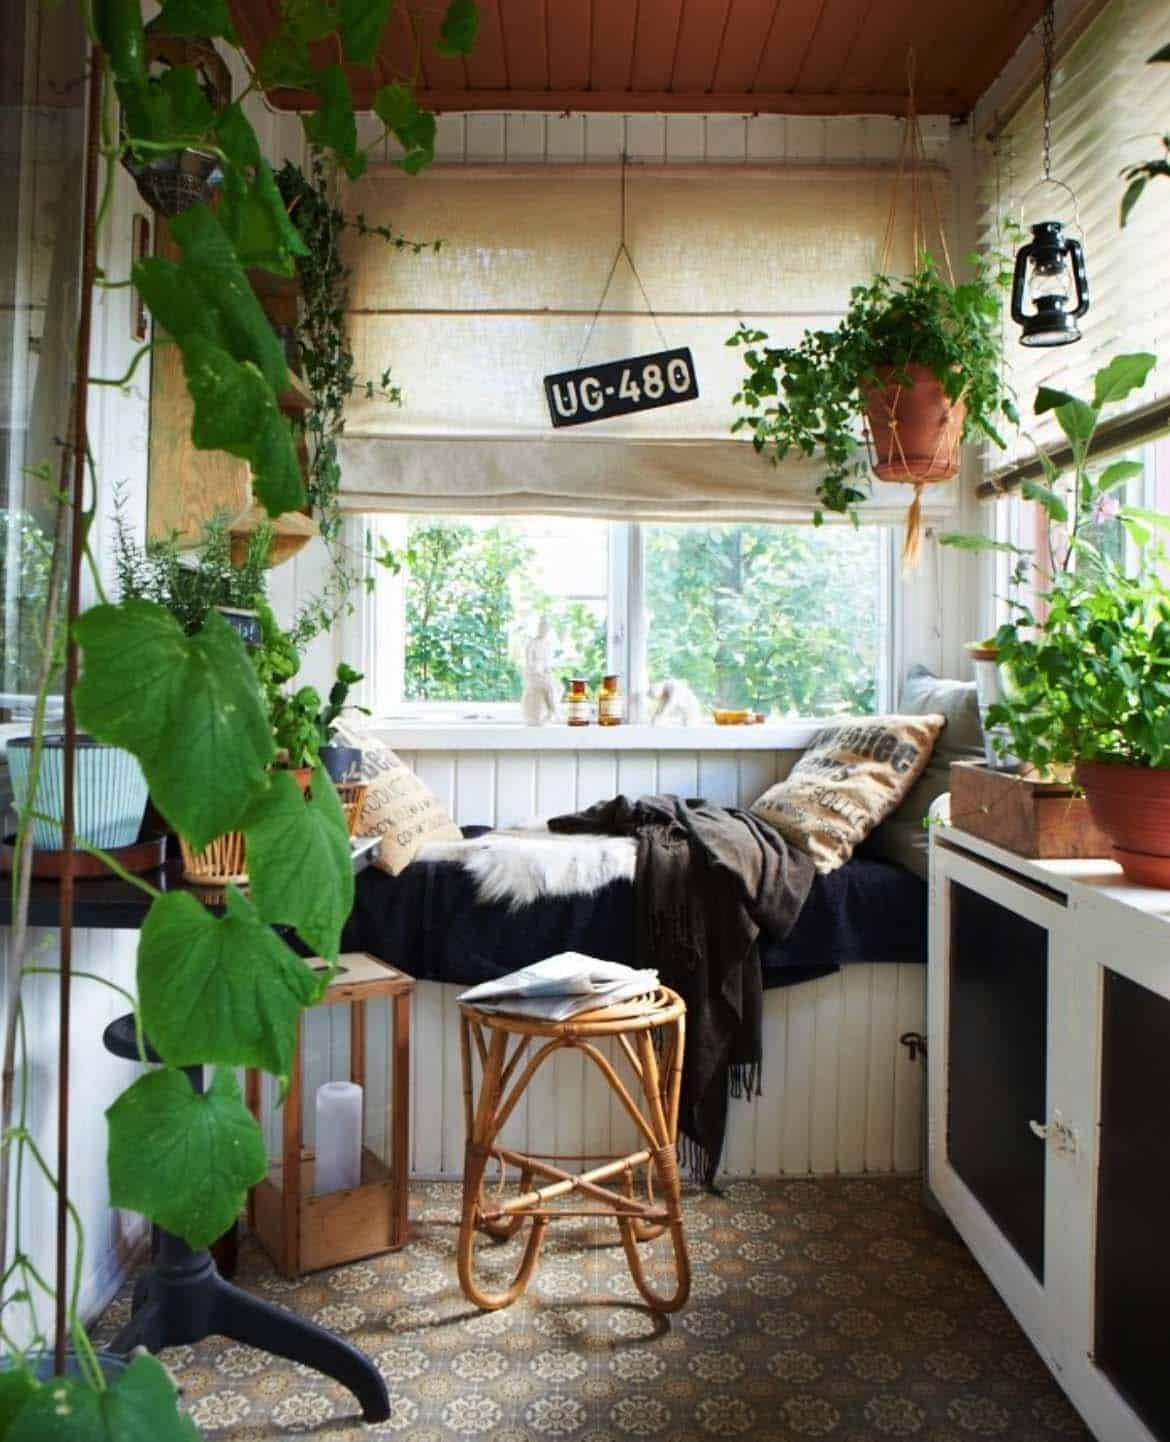 Cozy Reading Nooks For Lounging-22-1 Kindesign